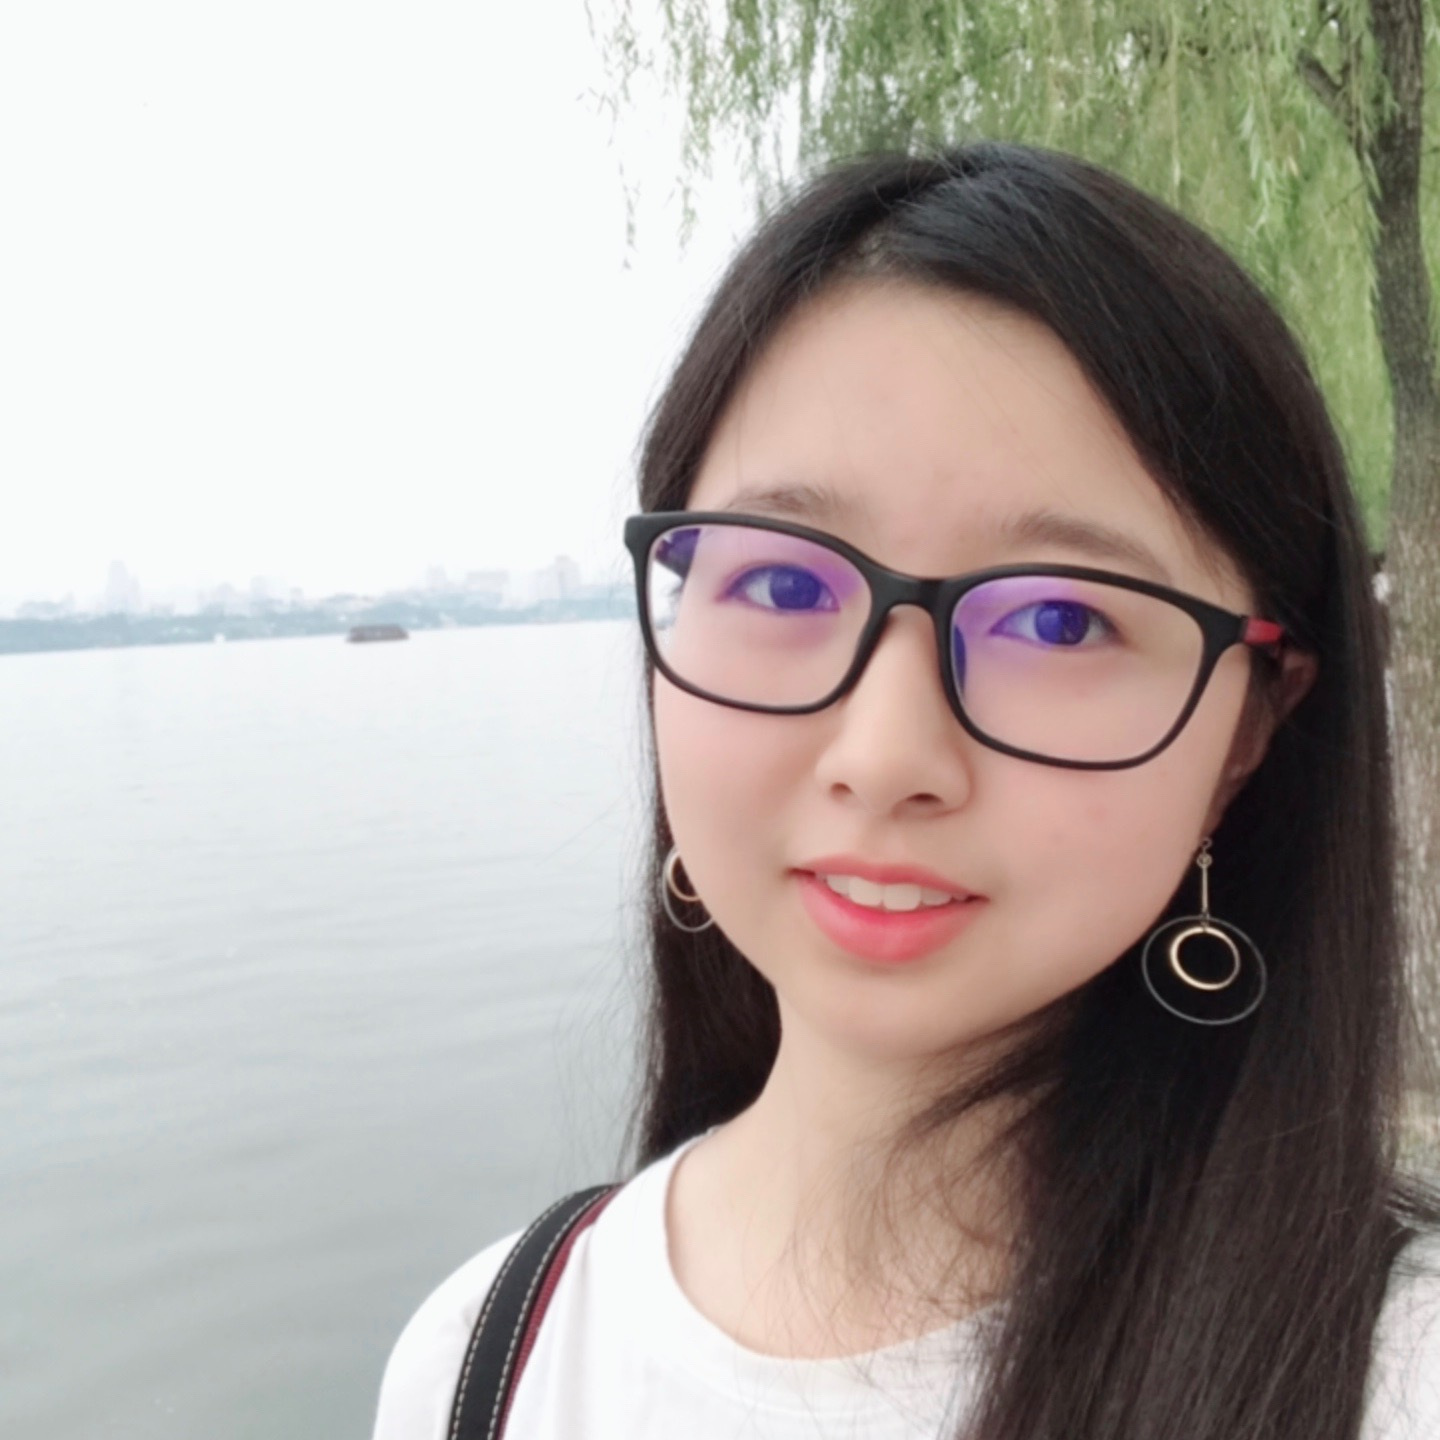 Qian Huang - Intelligent Systems Co-LeadComputer Science and Mathematics '21Hometown: Tianjin, ChinaI joined CDS after taking the training course in my first semester. I enjoy exploring new areas in CDS together with people with similar passion. In my free time, I like to play badminton and reading novels.